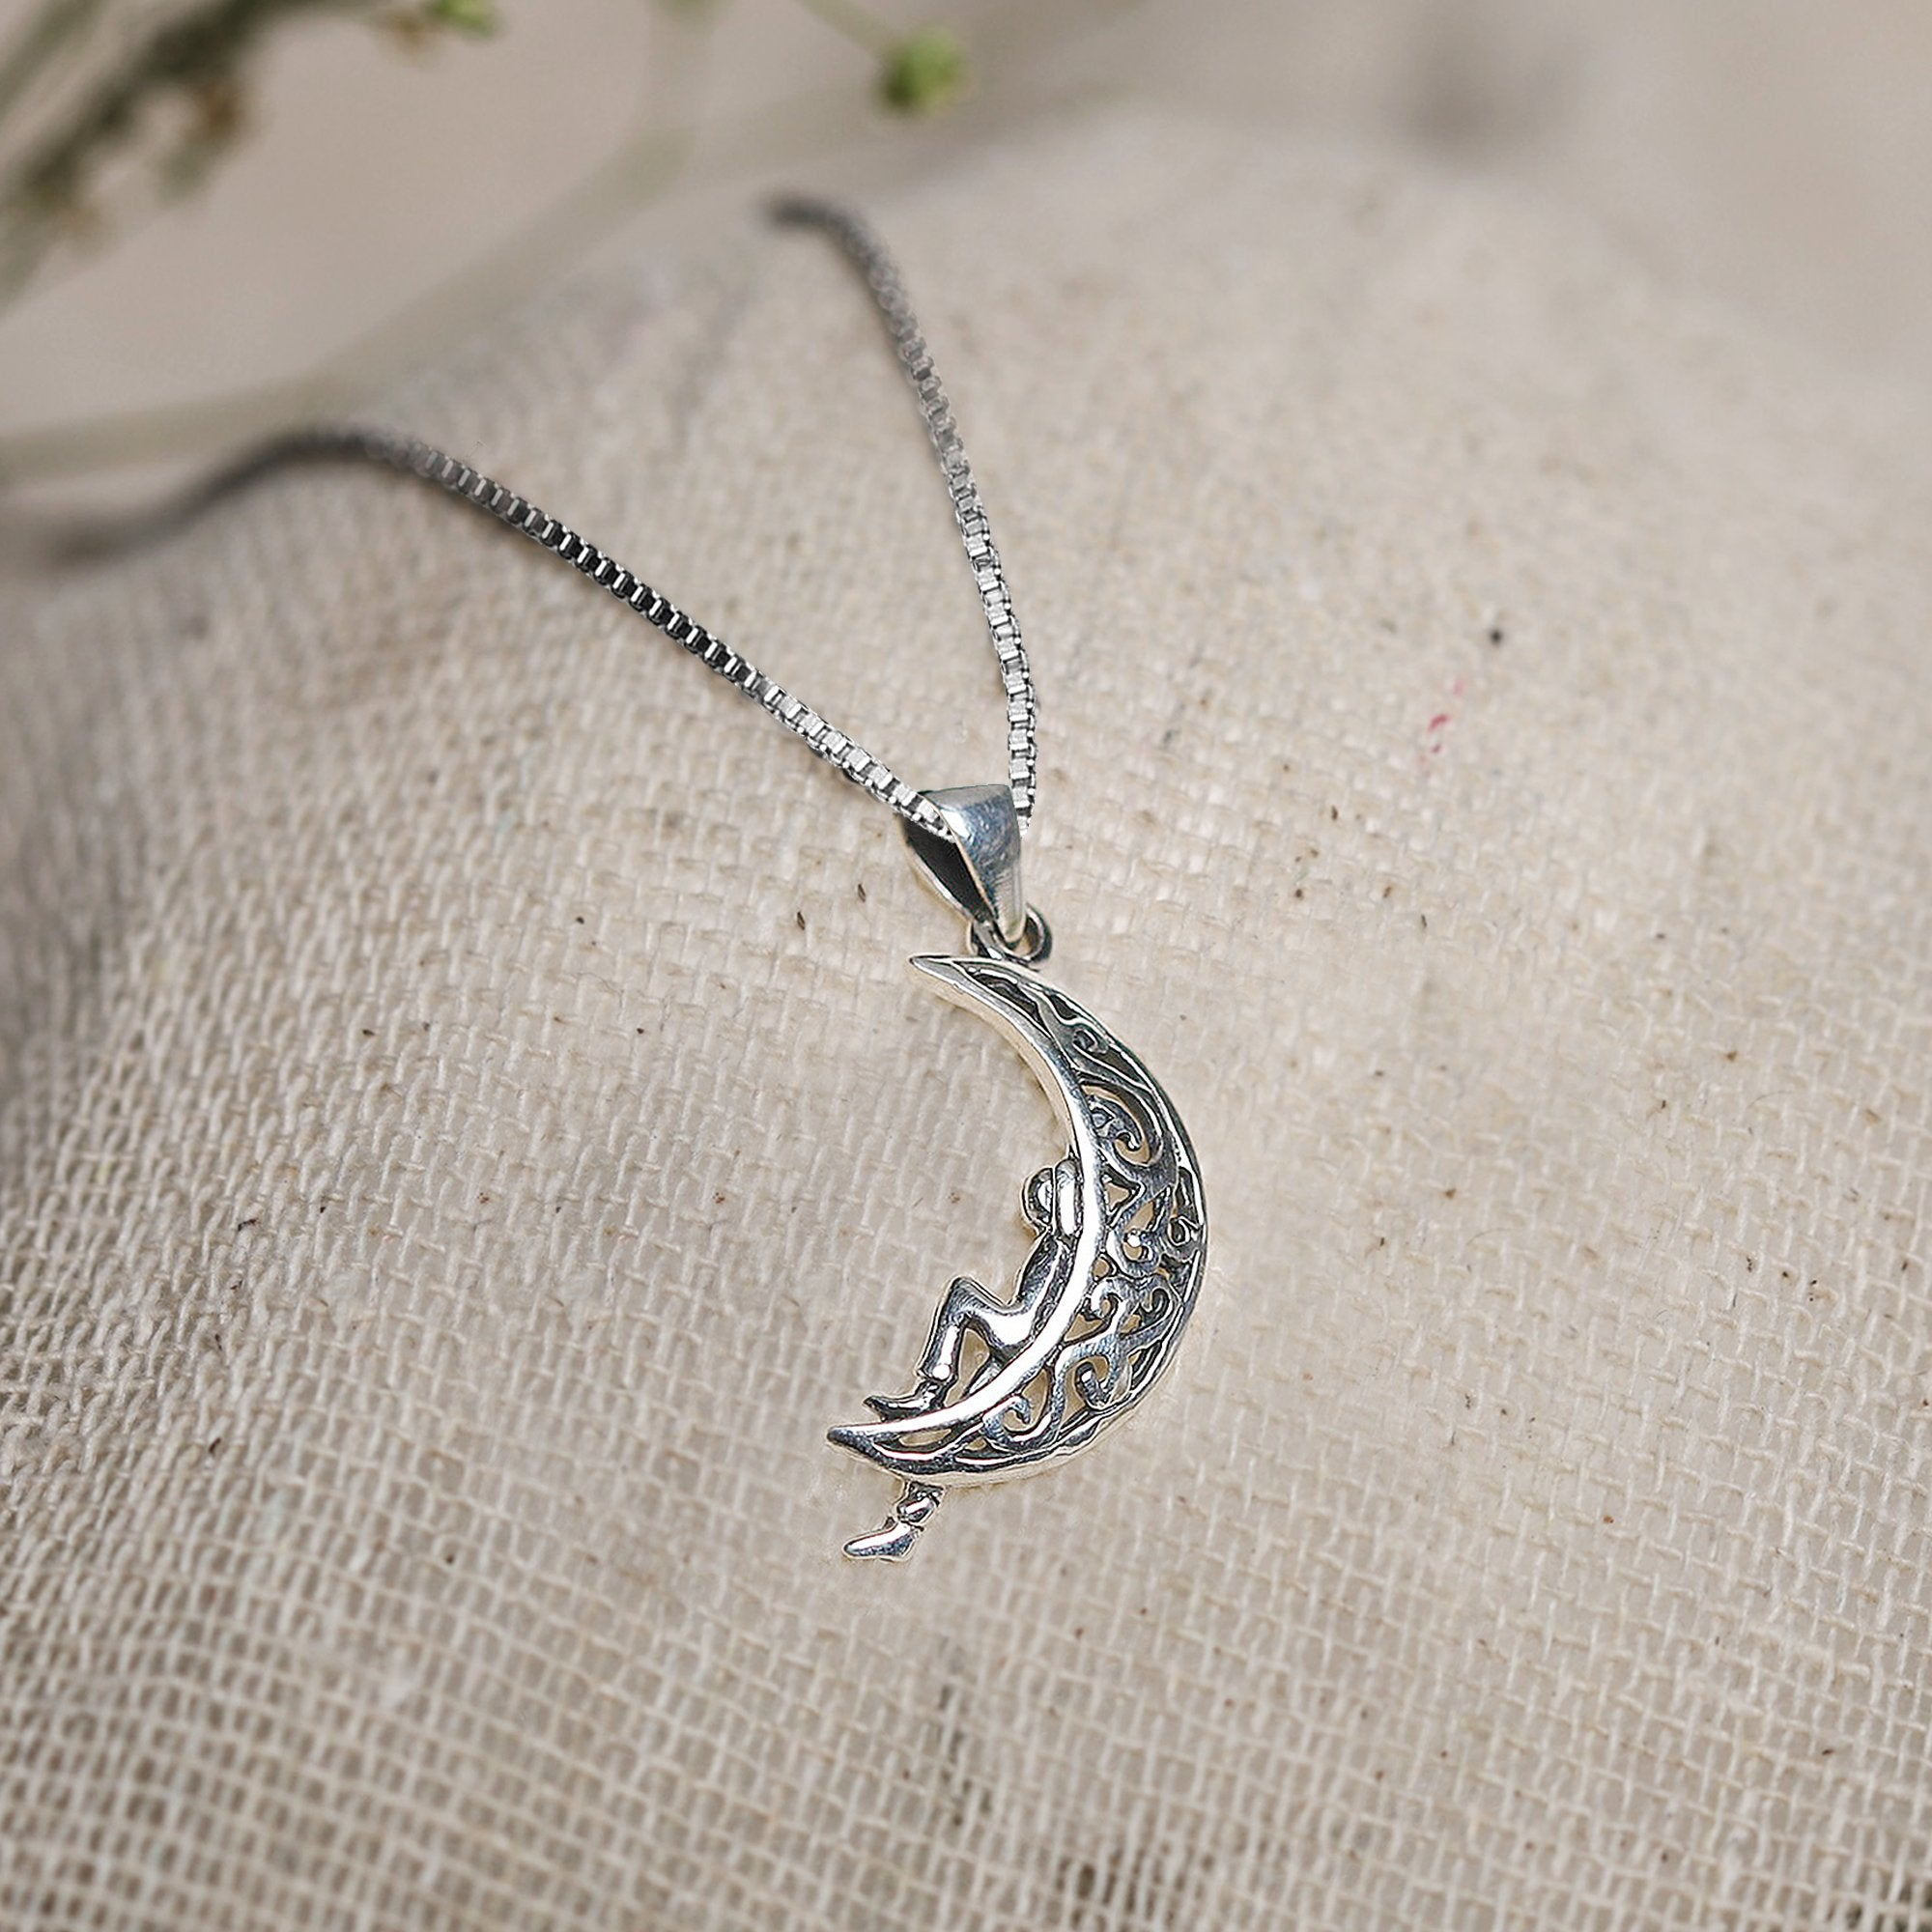 Oxidised Silver Unwind Moon Pendant with Box Chain